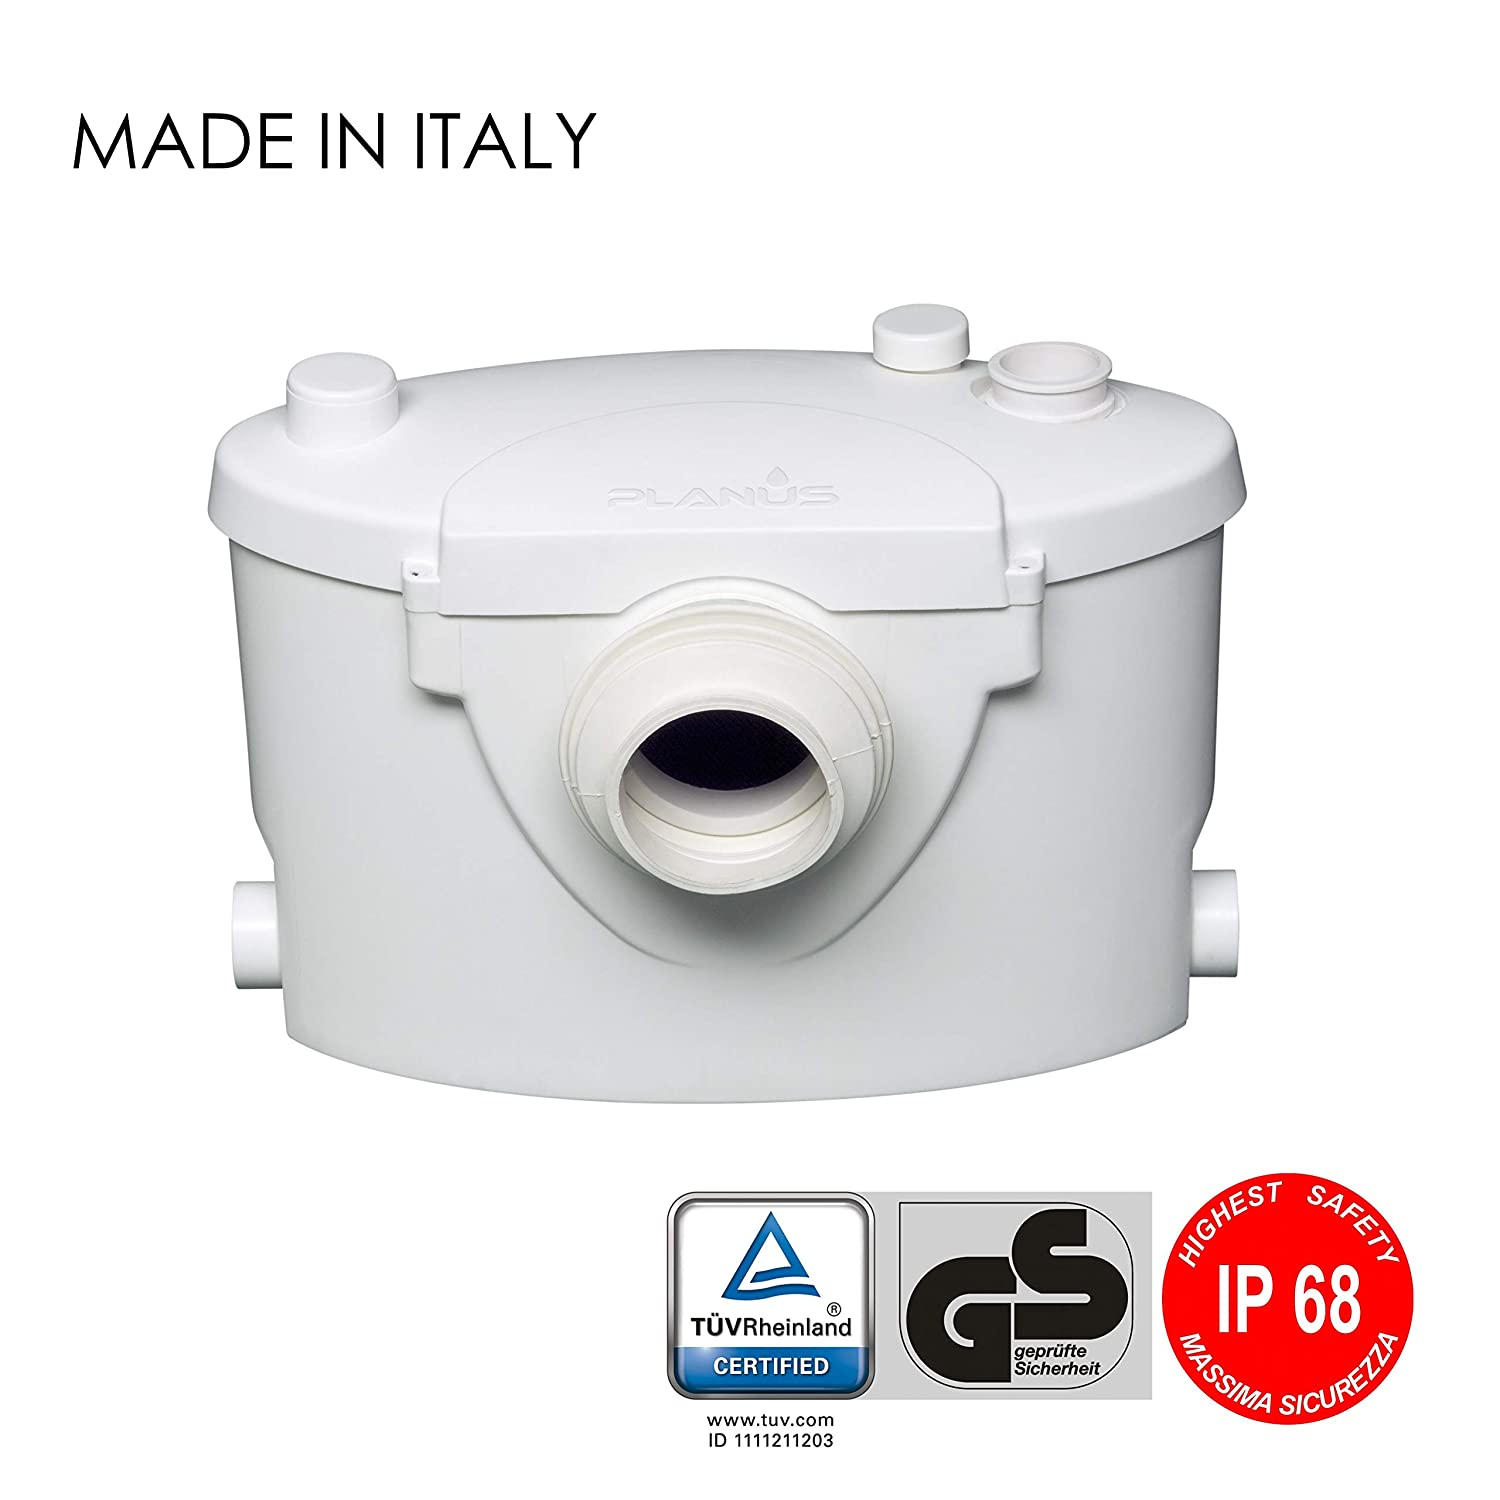 Planus Broysan 4 Broyeur wc adaptable - certifié IP68 - Made In Italy